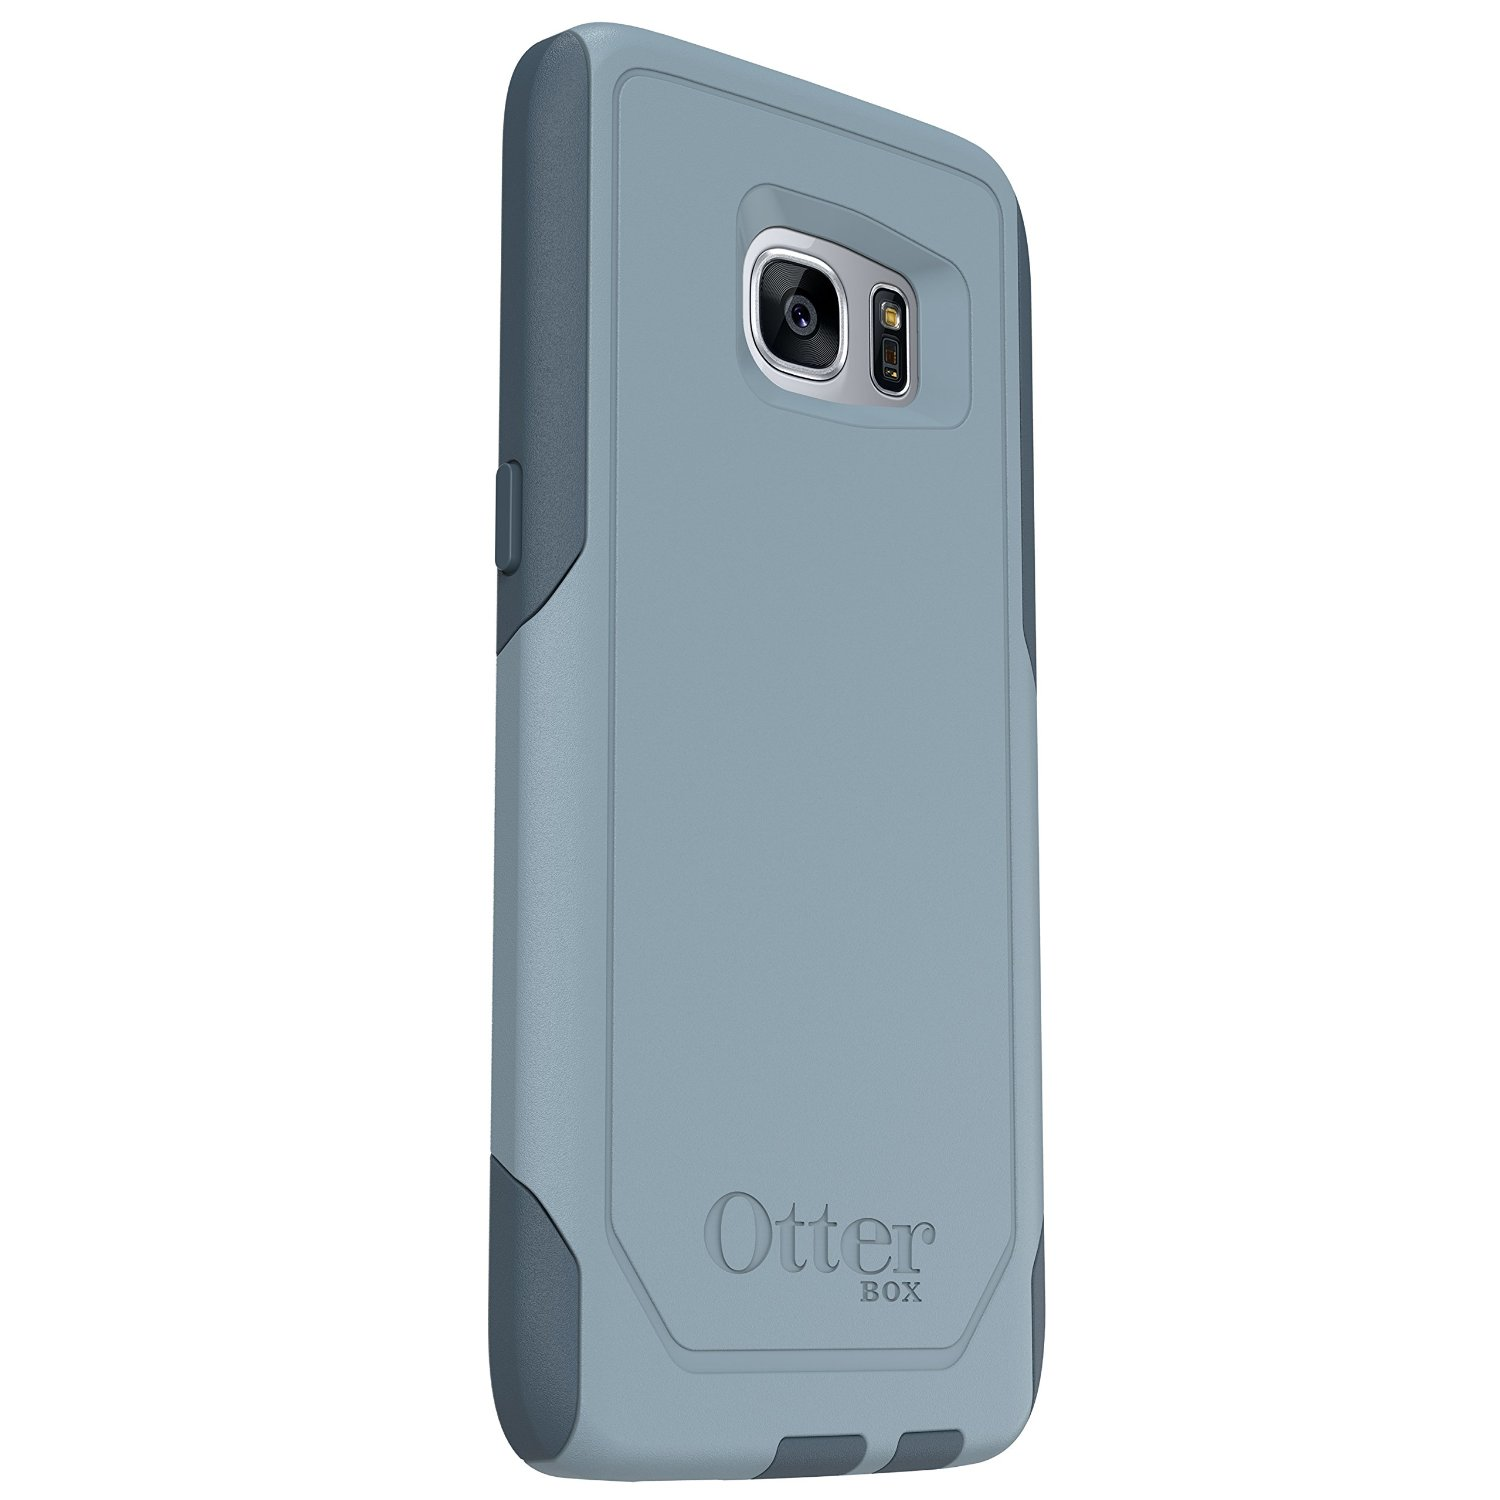 on sale 18c21 32180 Best Samsung Galaxy S7 Edge Cases | Phandroid